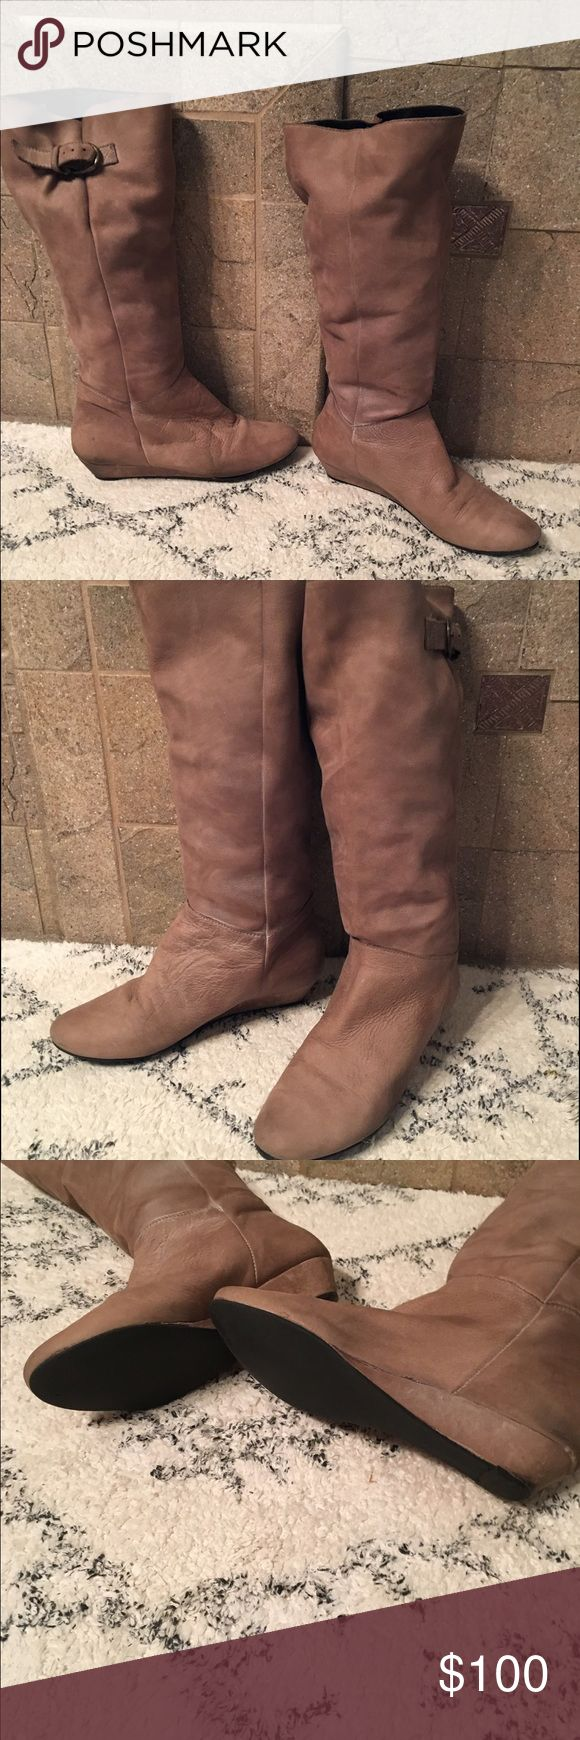 Steve Madden,grey, Intyce riding boots, size 7 Just in time for fall! Like new Steven by Steve Madden, grey, Intyce riding boots, size 7. These are 100% (super soft) leather. They were a little big on me and I wore these maybe 2 time. This color is not currently available through Steve Madden! Steven by Steve Madden Shoes Winter & Rain Boots